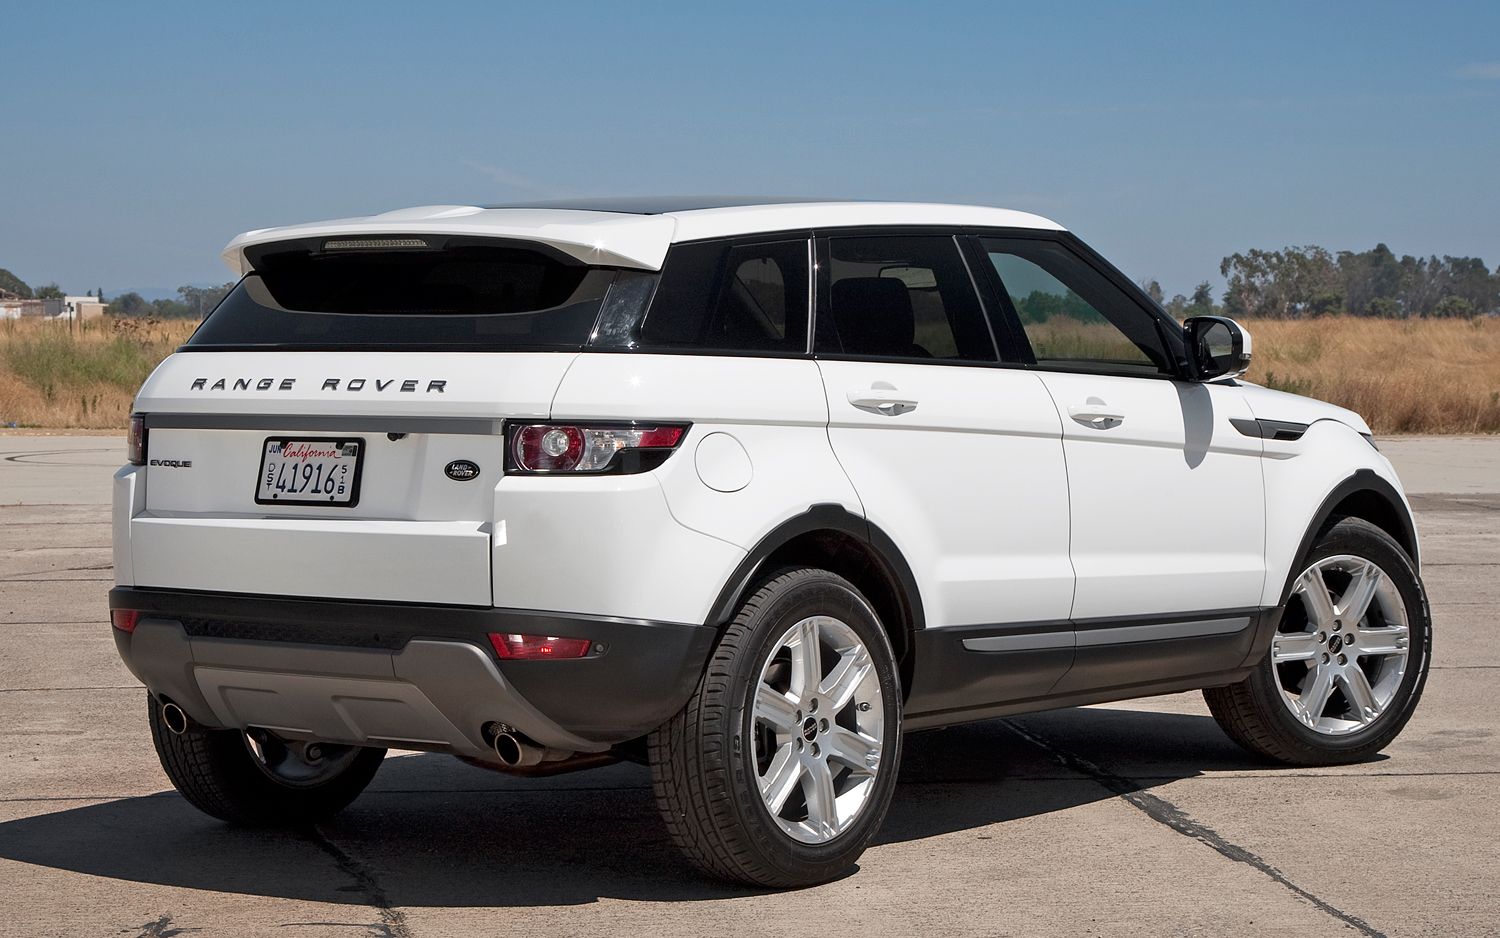 Trend SUV of the Year lan rover evoquo price Photo Gallery  free download image Wallpaper